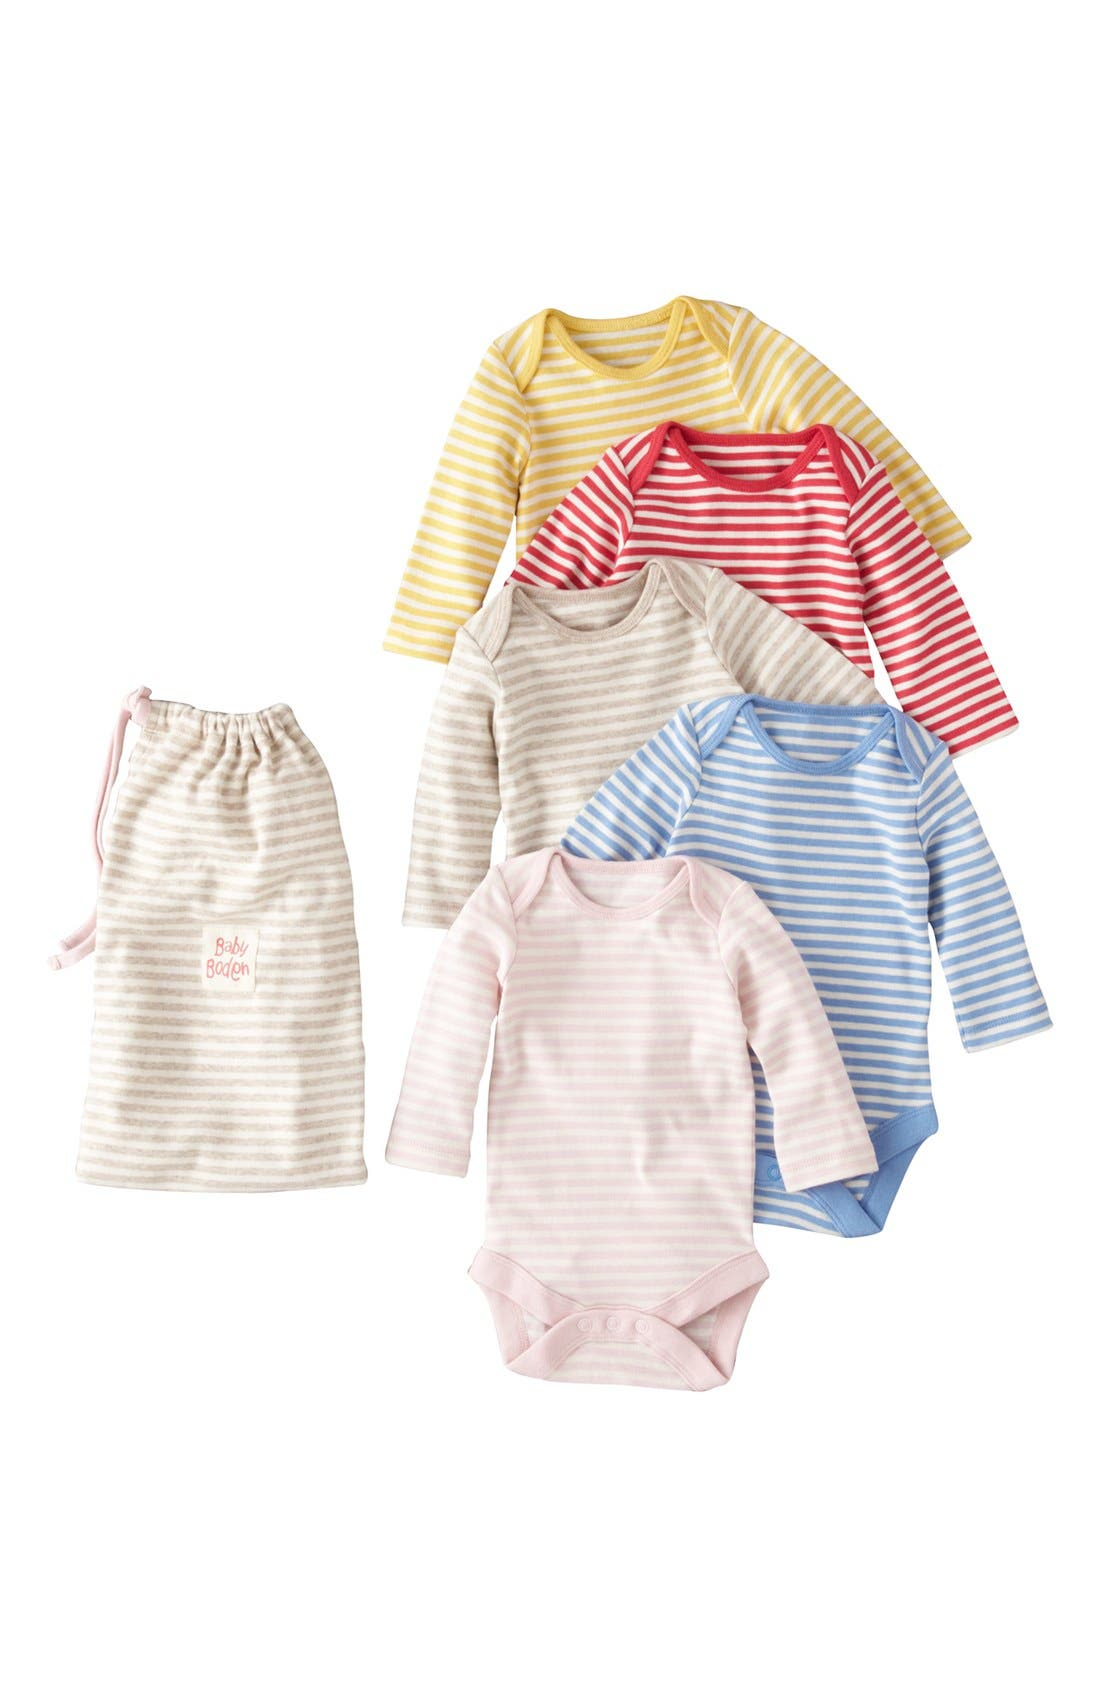 Alternate Image 1 Selected - Mini Boden Bodysuits (5-Pack) (Baby Girls)